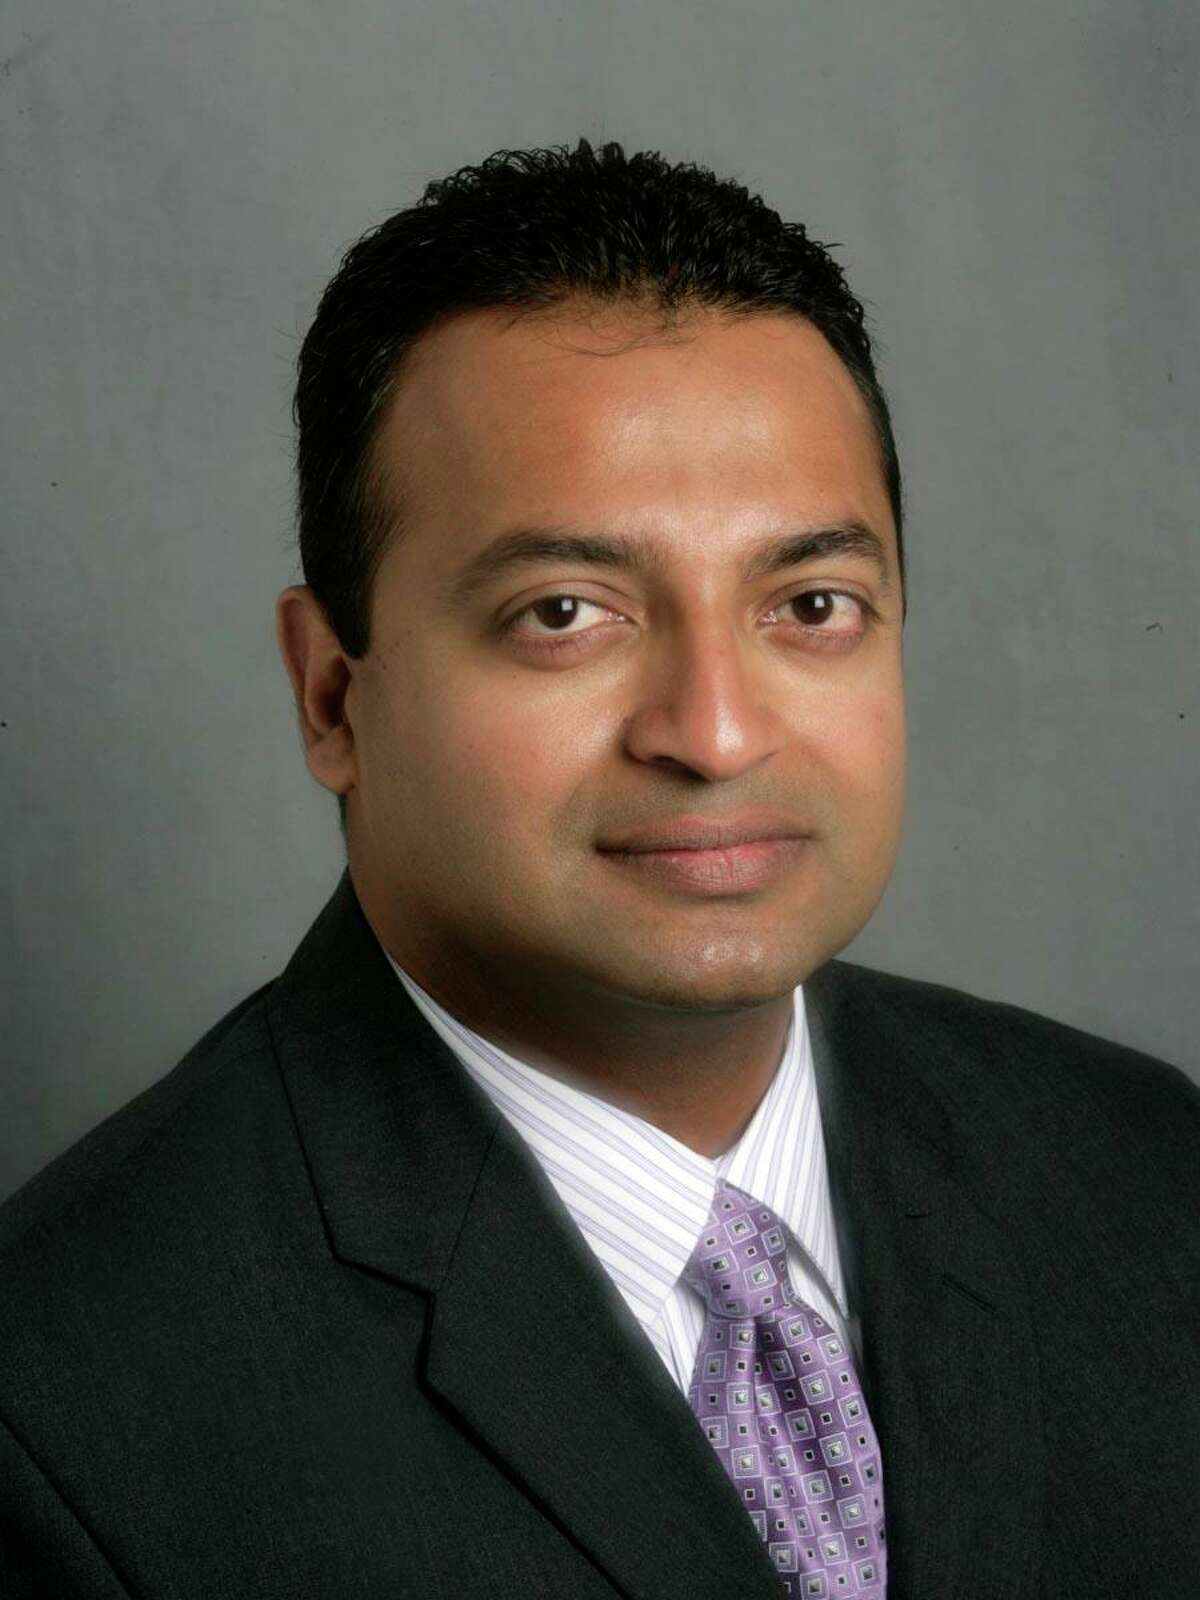 Allan Colaco is the Stamford managing partner for professional-services firm KPMG.